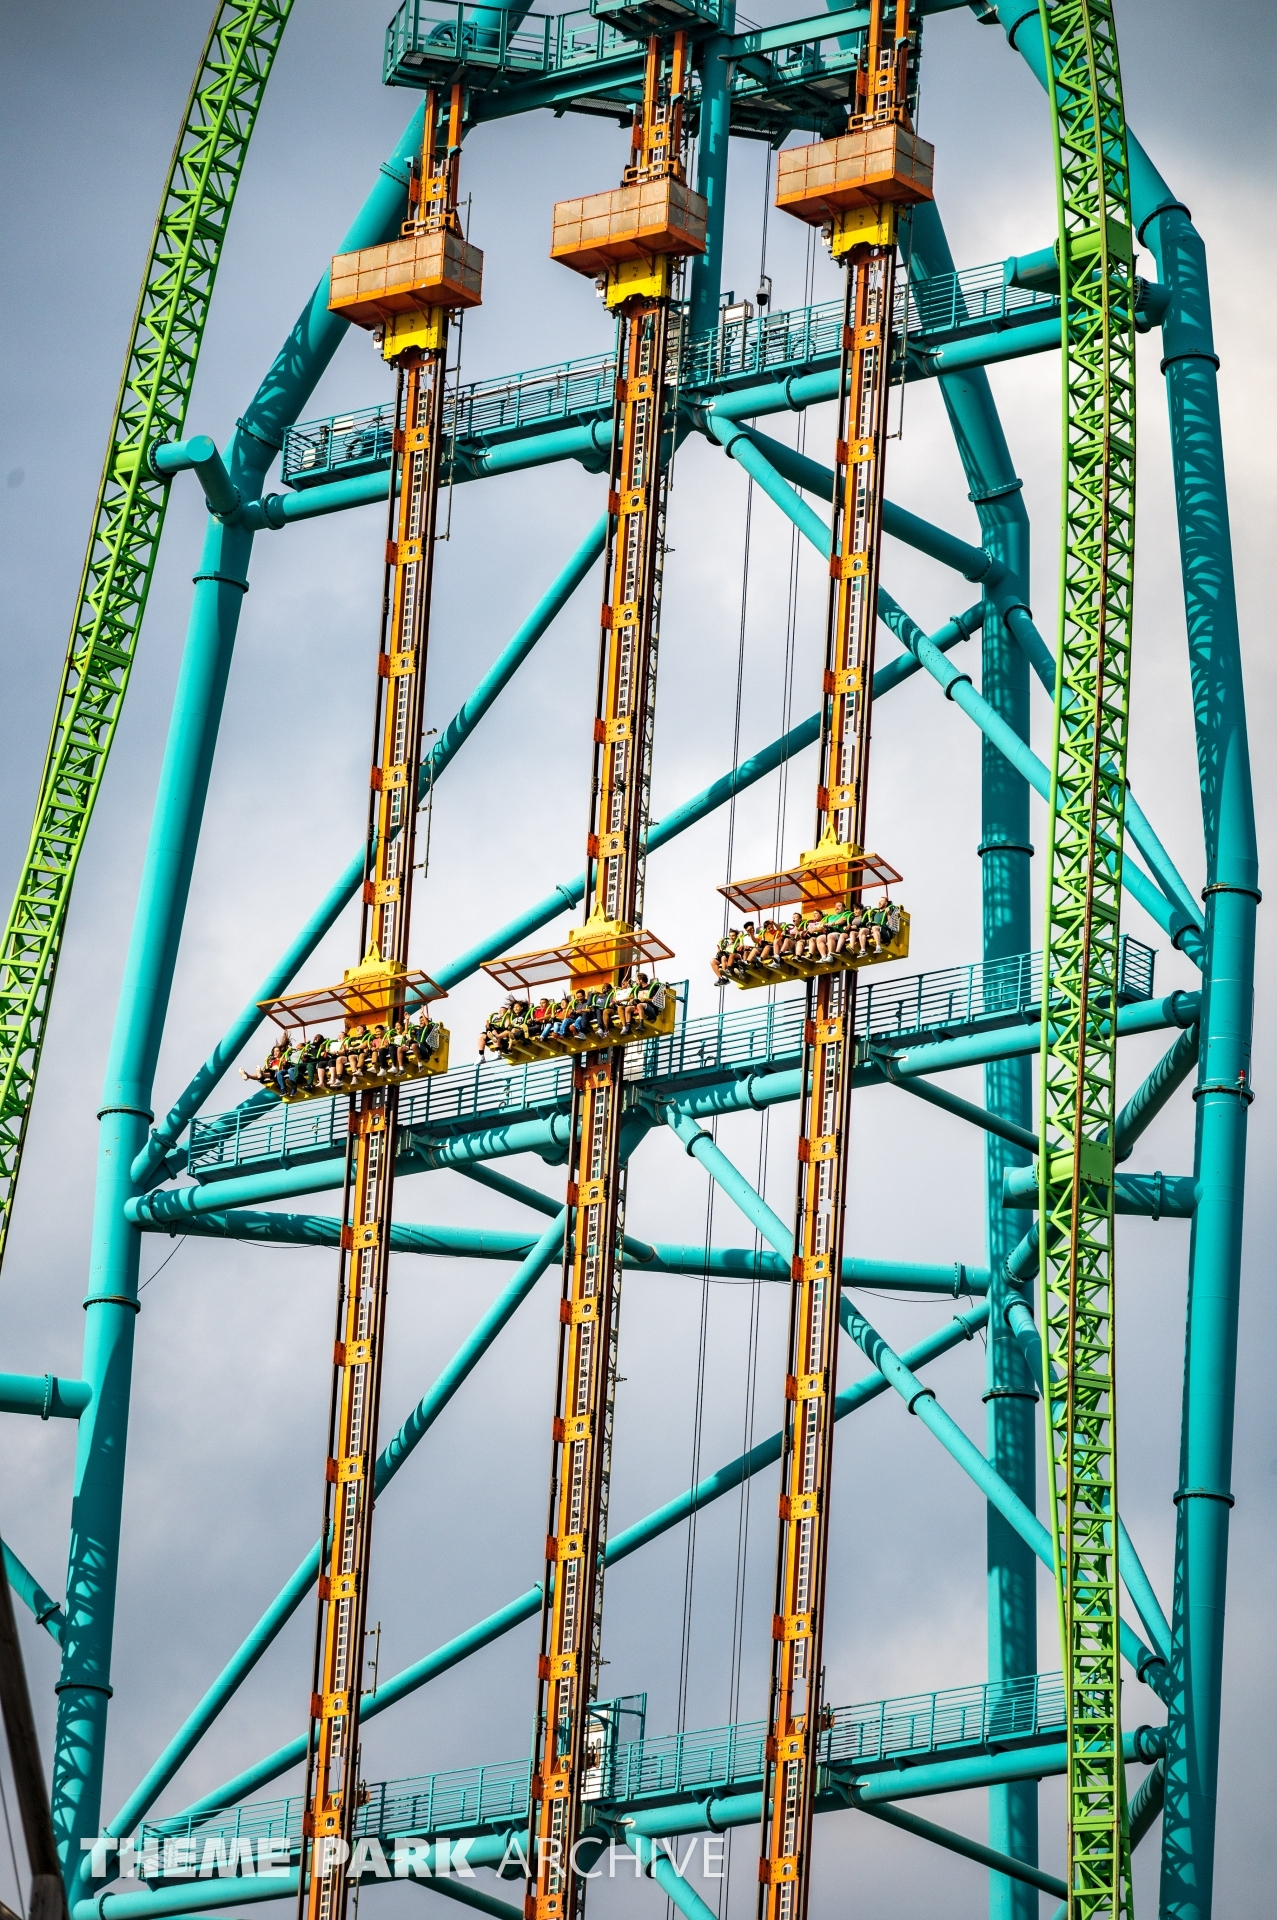 Zumanjaro Drop of Doom at Six Flags Great Adventure